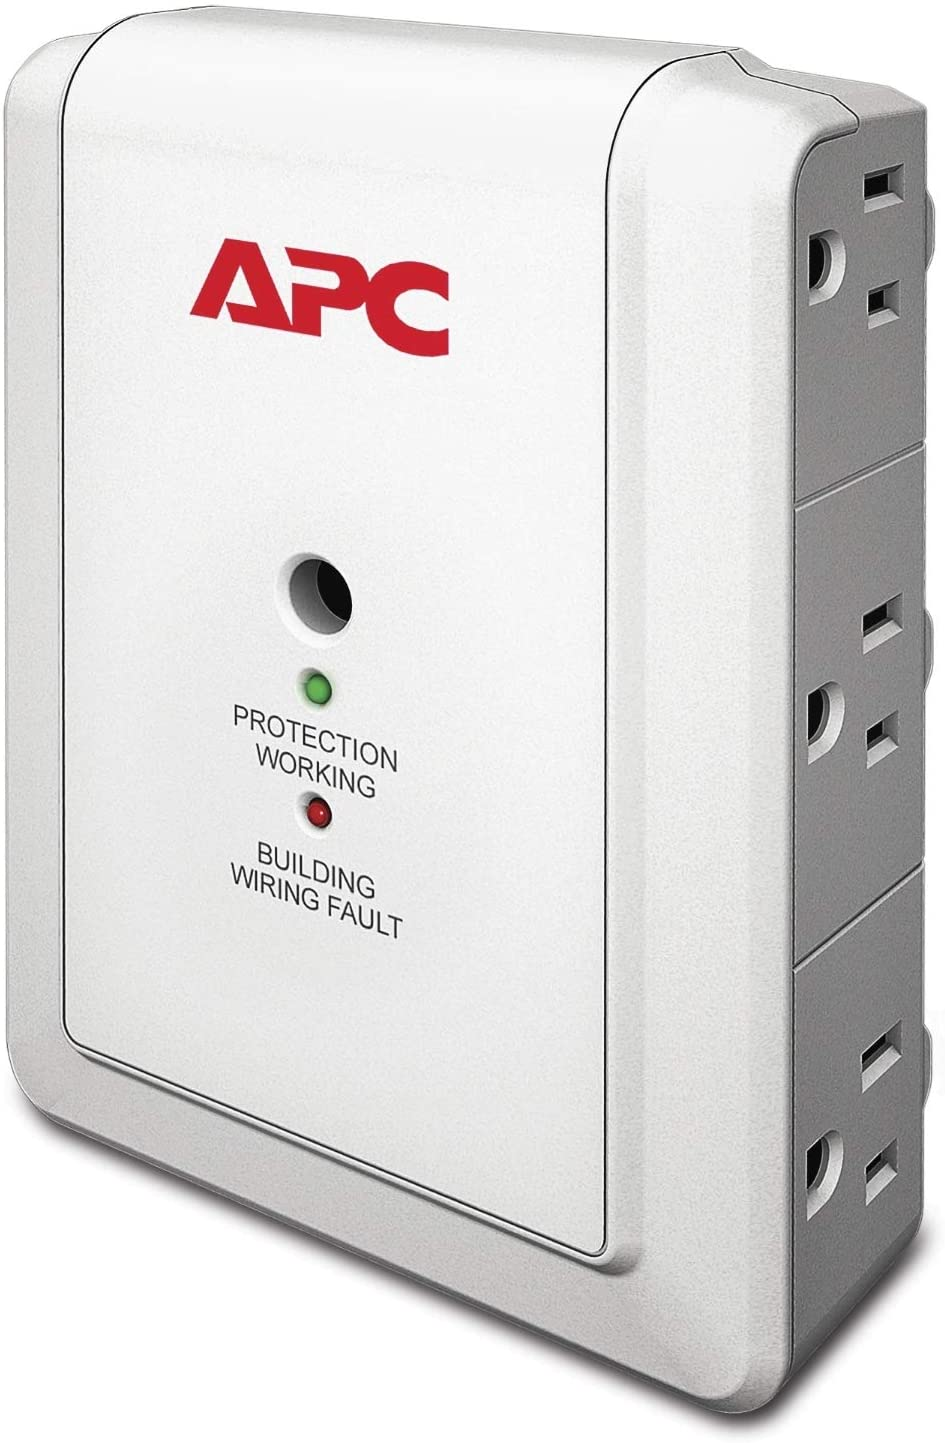 Roll over image to zoom in APC Wall Outlet Multi Plug Extender, P6W, (6) AC Multi Plug Outlet, 1080 Joule Surge Protector white